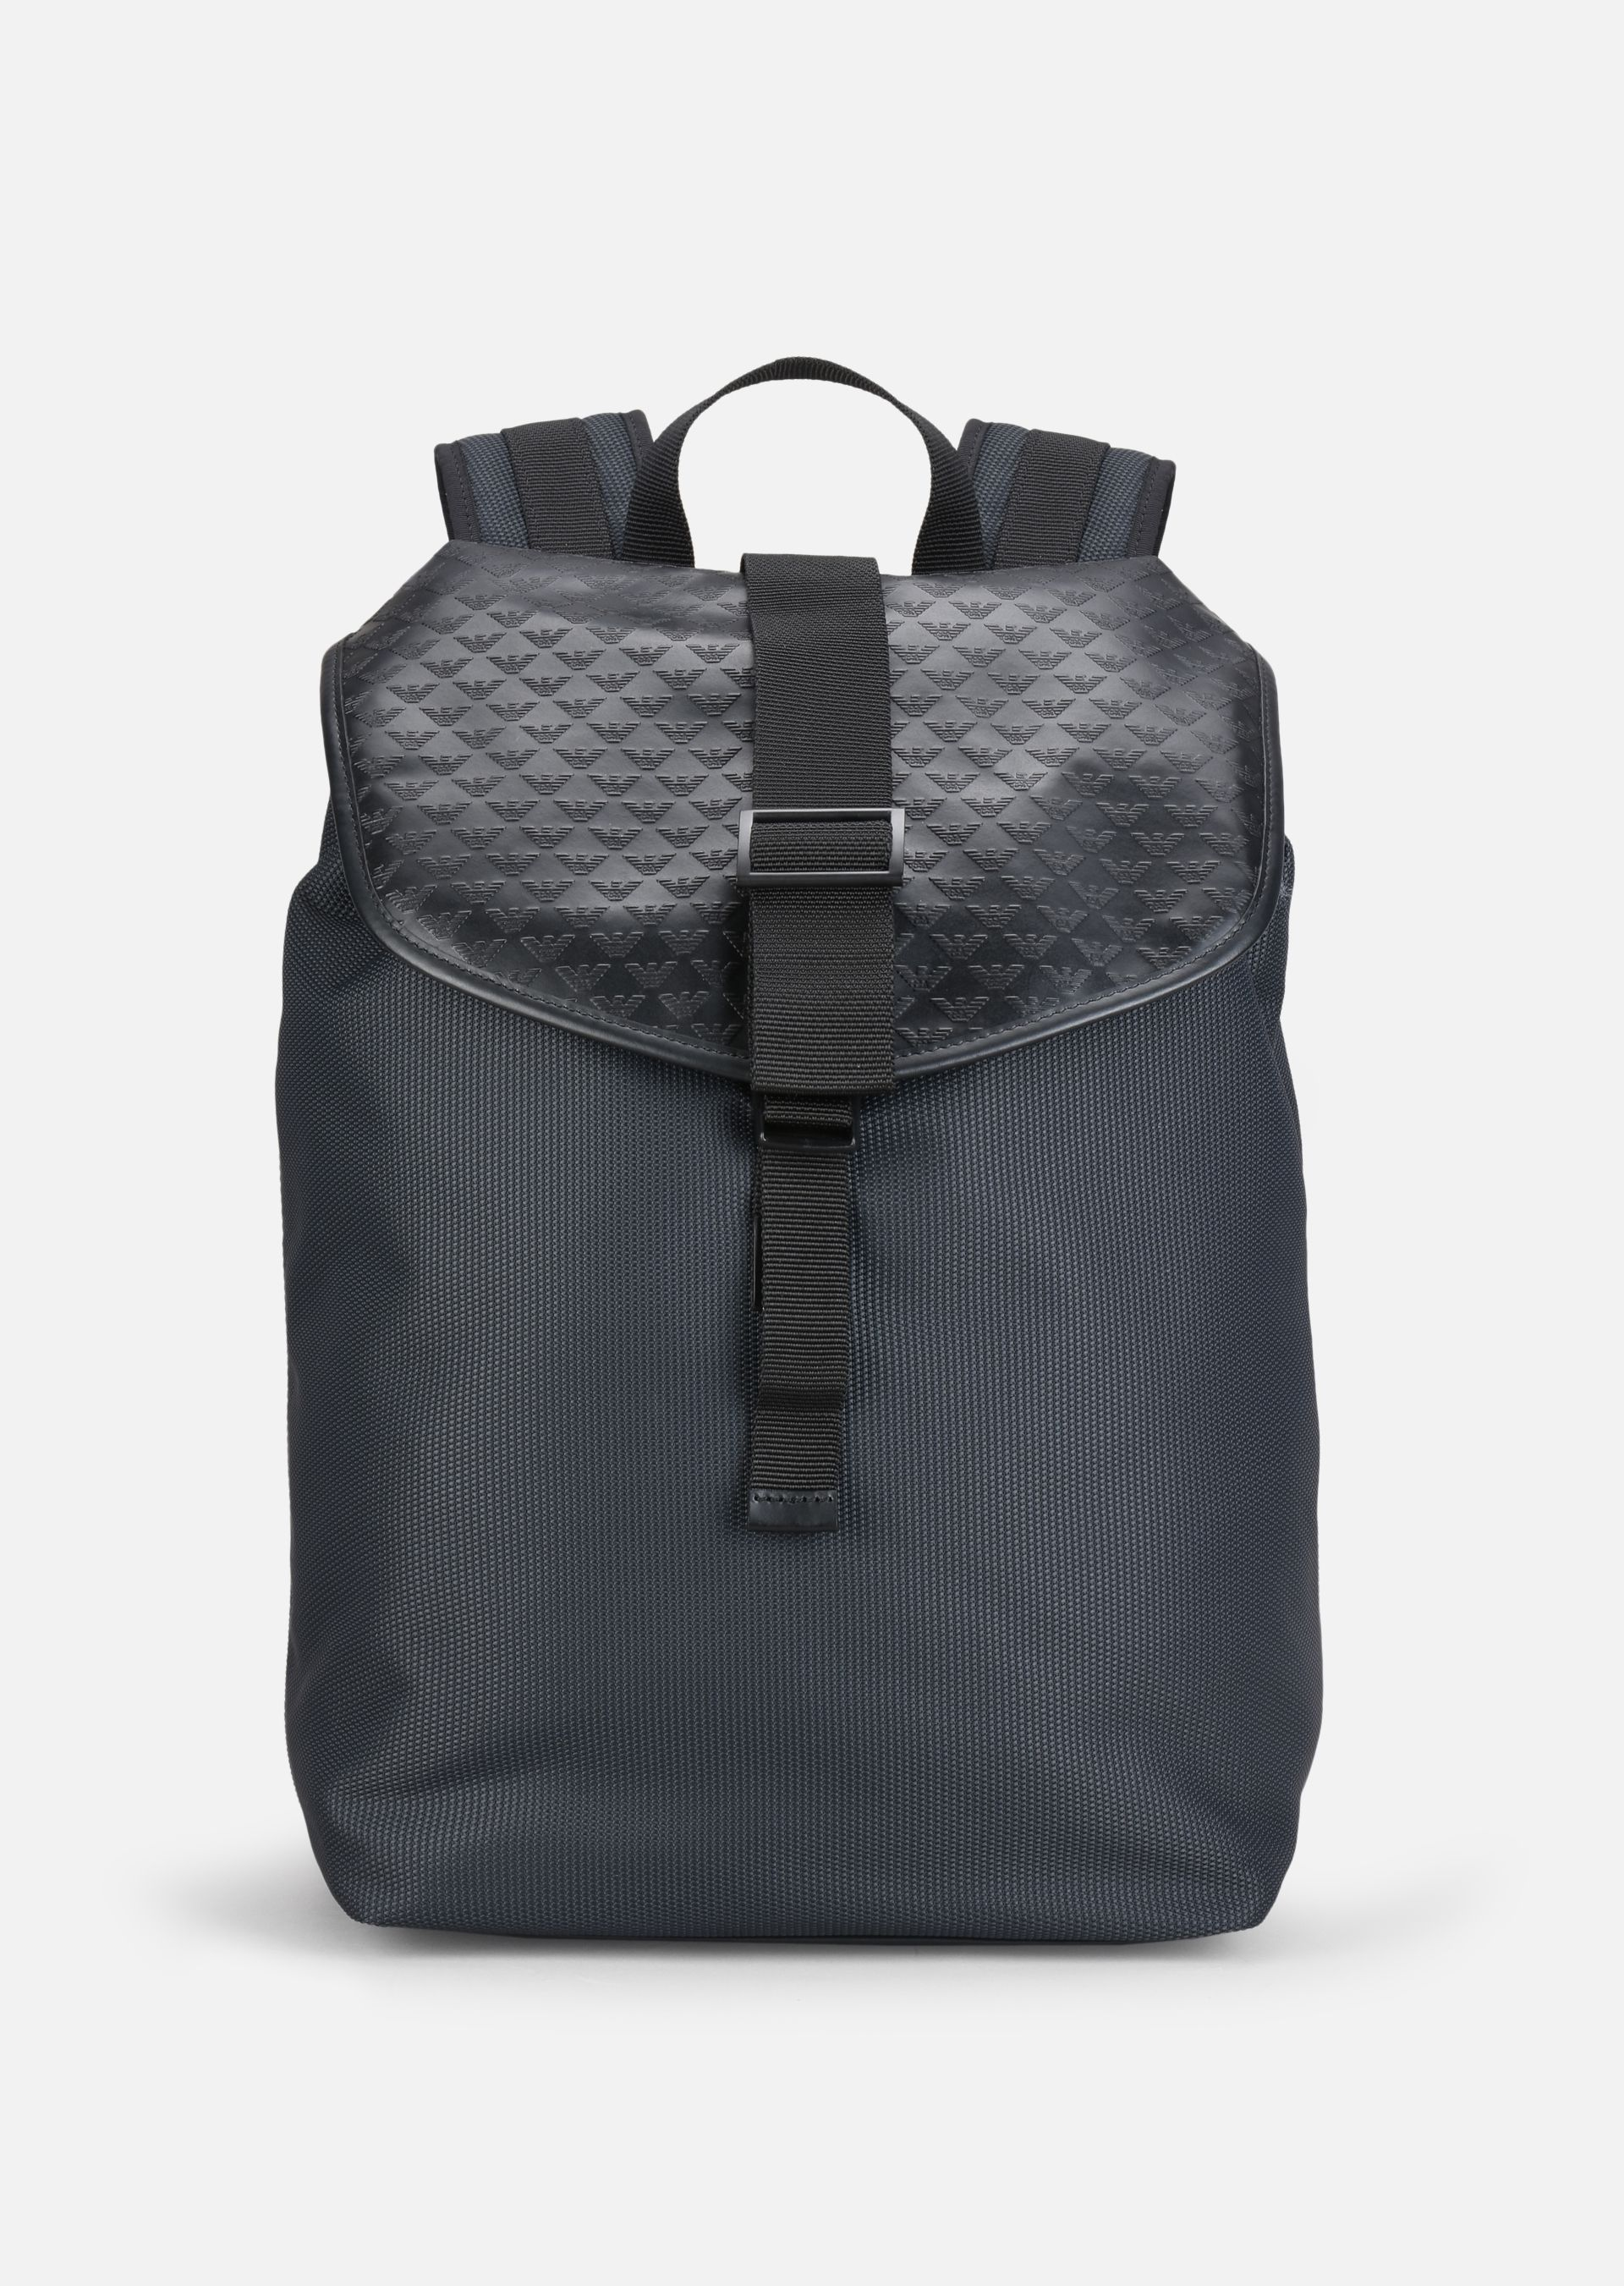 ALL OVER LOGO PRINT CORDURA AND LEATHER BACKPACK for Men | Emporio ...